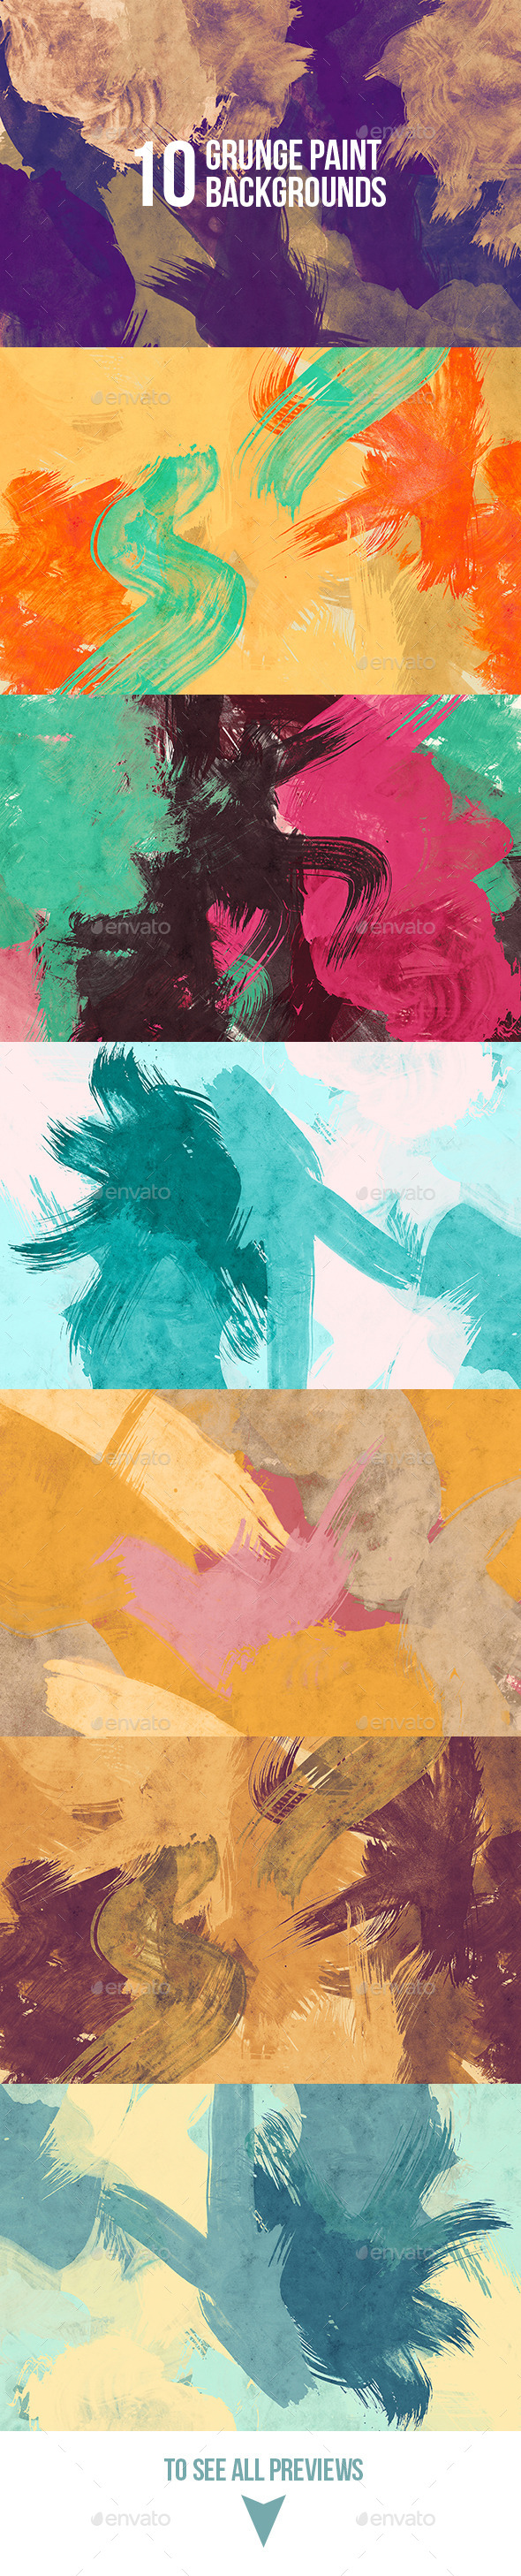 Grunge Paint Backgrounds - Abstract Backgrounds